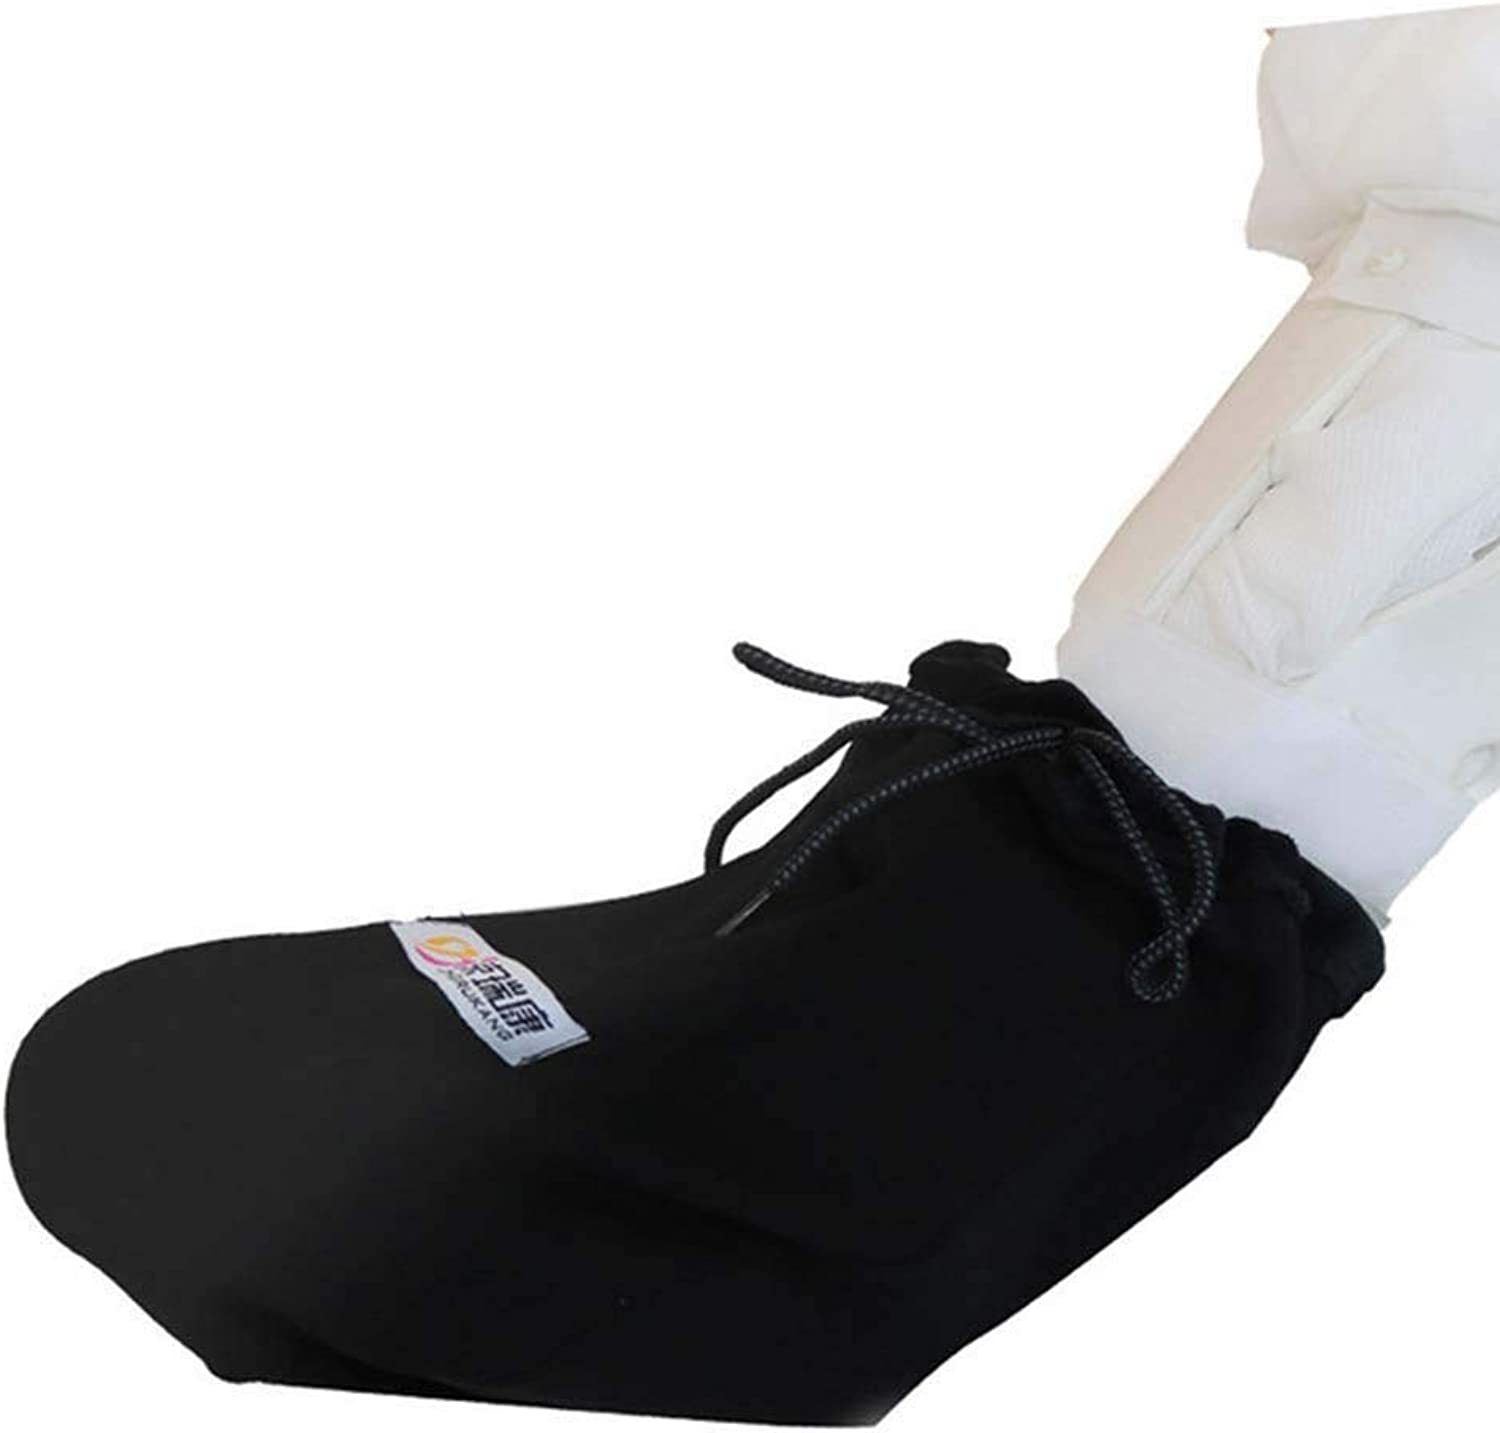 Bone Fracture Warm Sock Foot Predector Covers for Wearing in Plaster Breathable and Suitable Sock(2pcs)